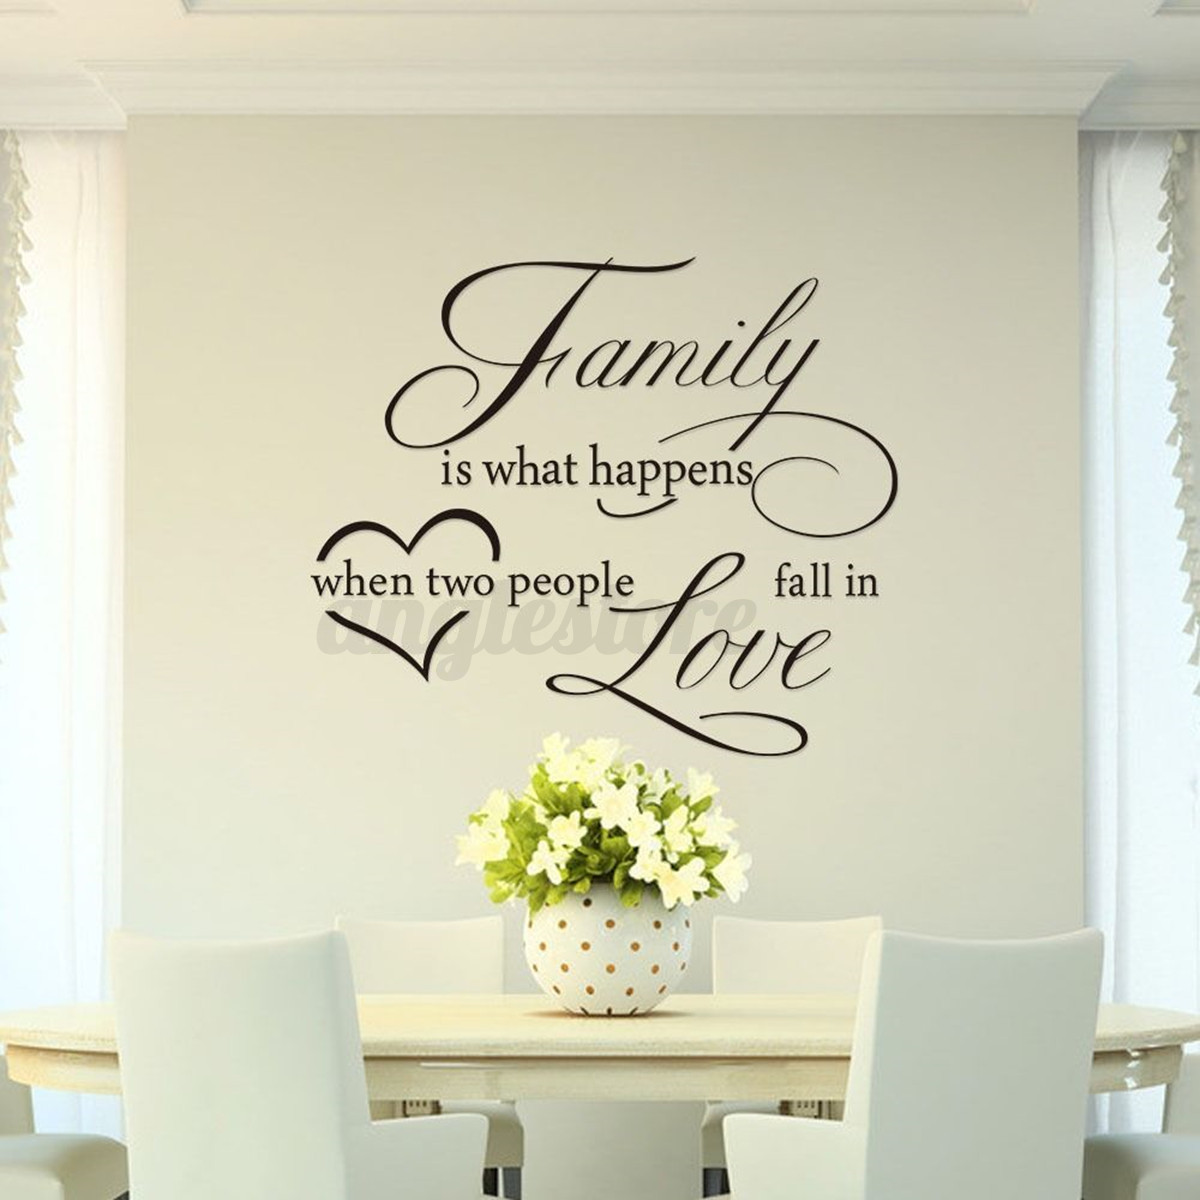 diy family love heart wall sticker removeable home room art mural decal decor ebay. Black Bedroom Furniture Sets. Home Design Ideas